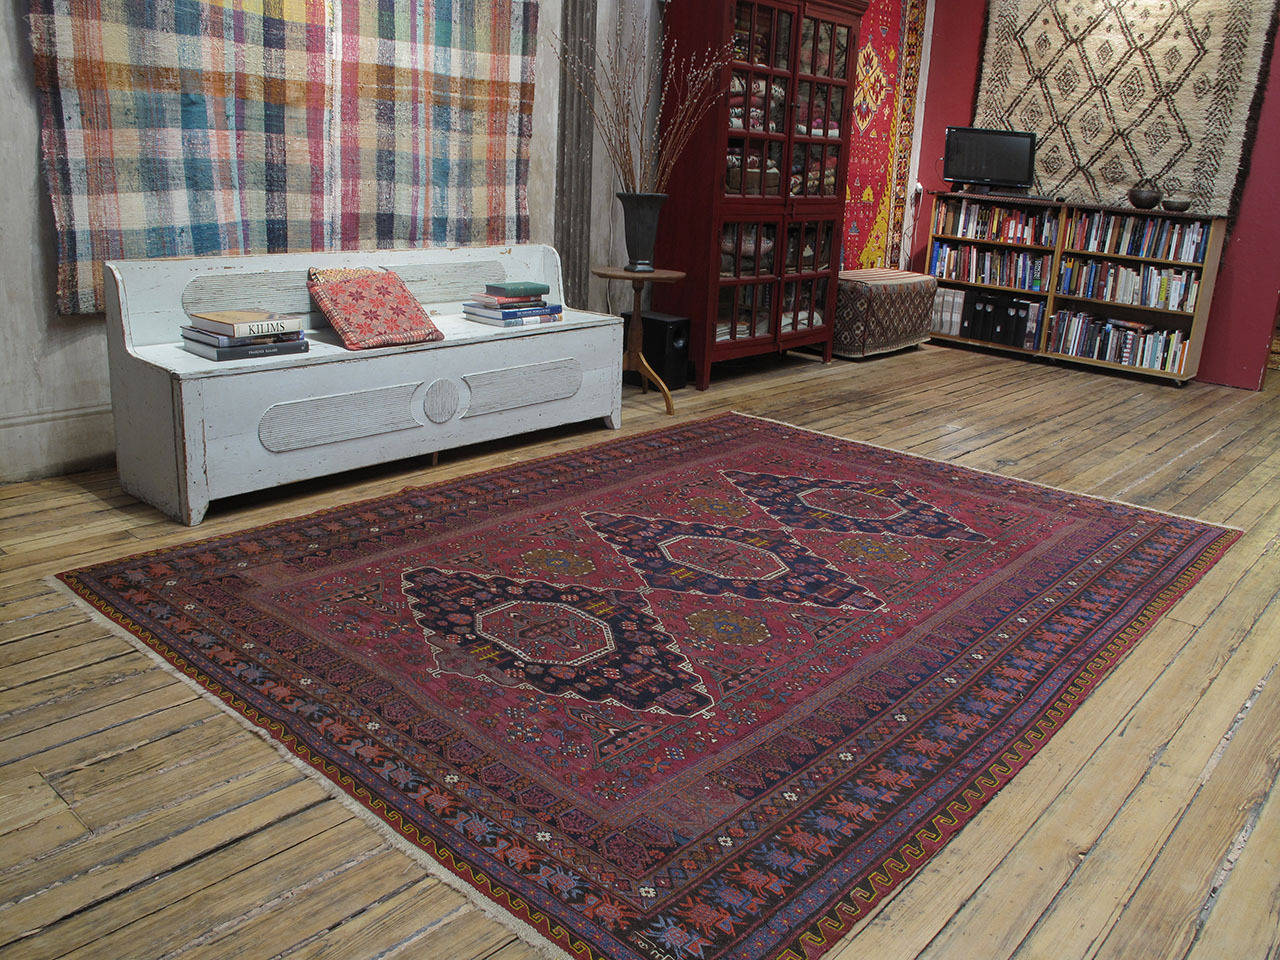 A great old tribal flat-weave from the Caucasus, woven in the intricate